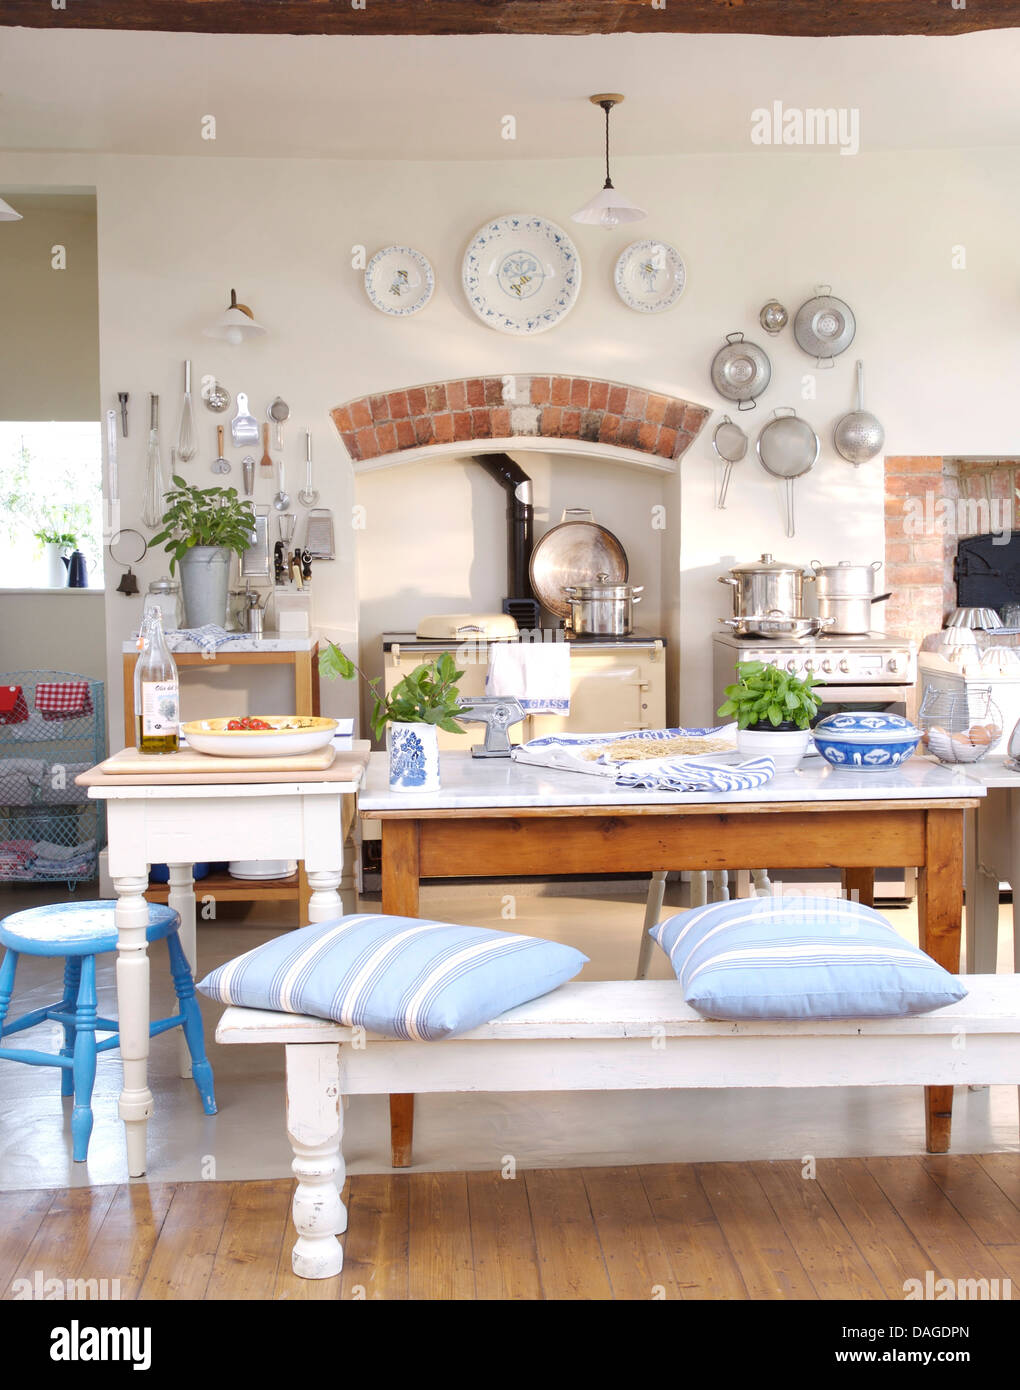 Charming Blue Striped Cushion On White Bench At Simple Wooden Table In Country  Kitchen With Display Of Plates And Pans On Wall Above Aga